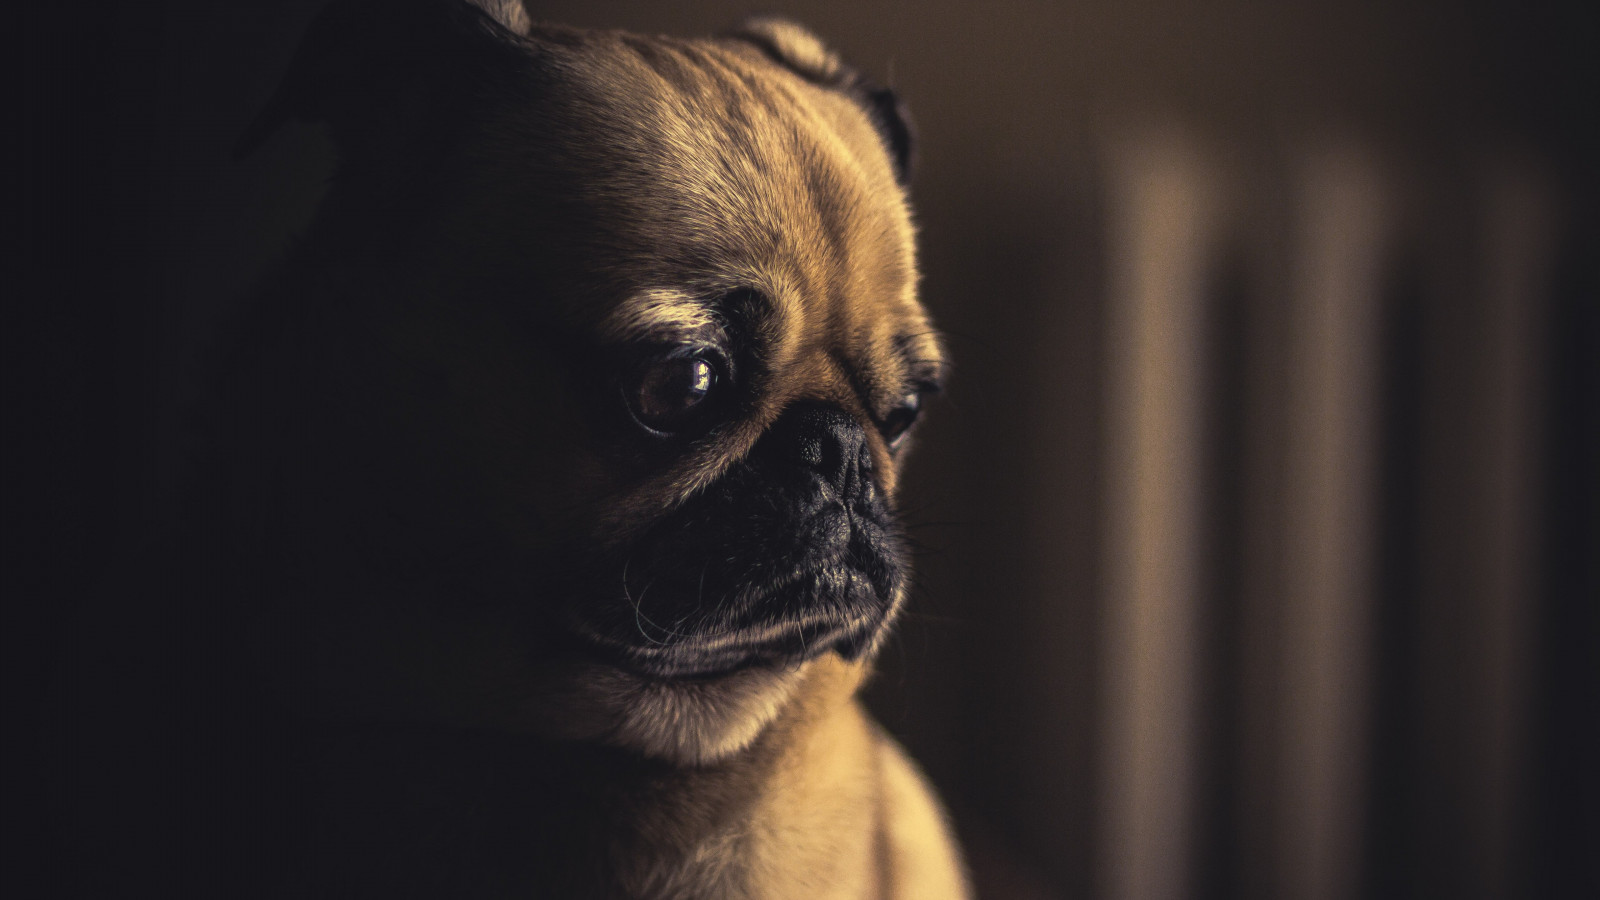 So cute this pug puppy wallpaper 1600x900